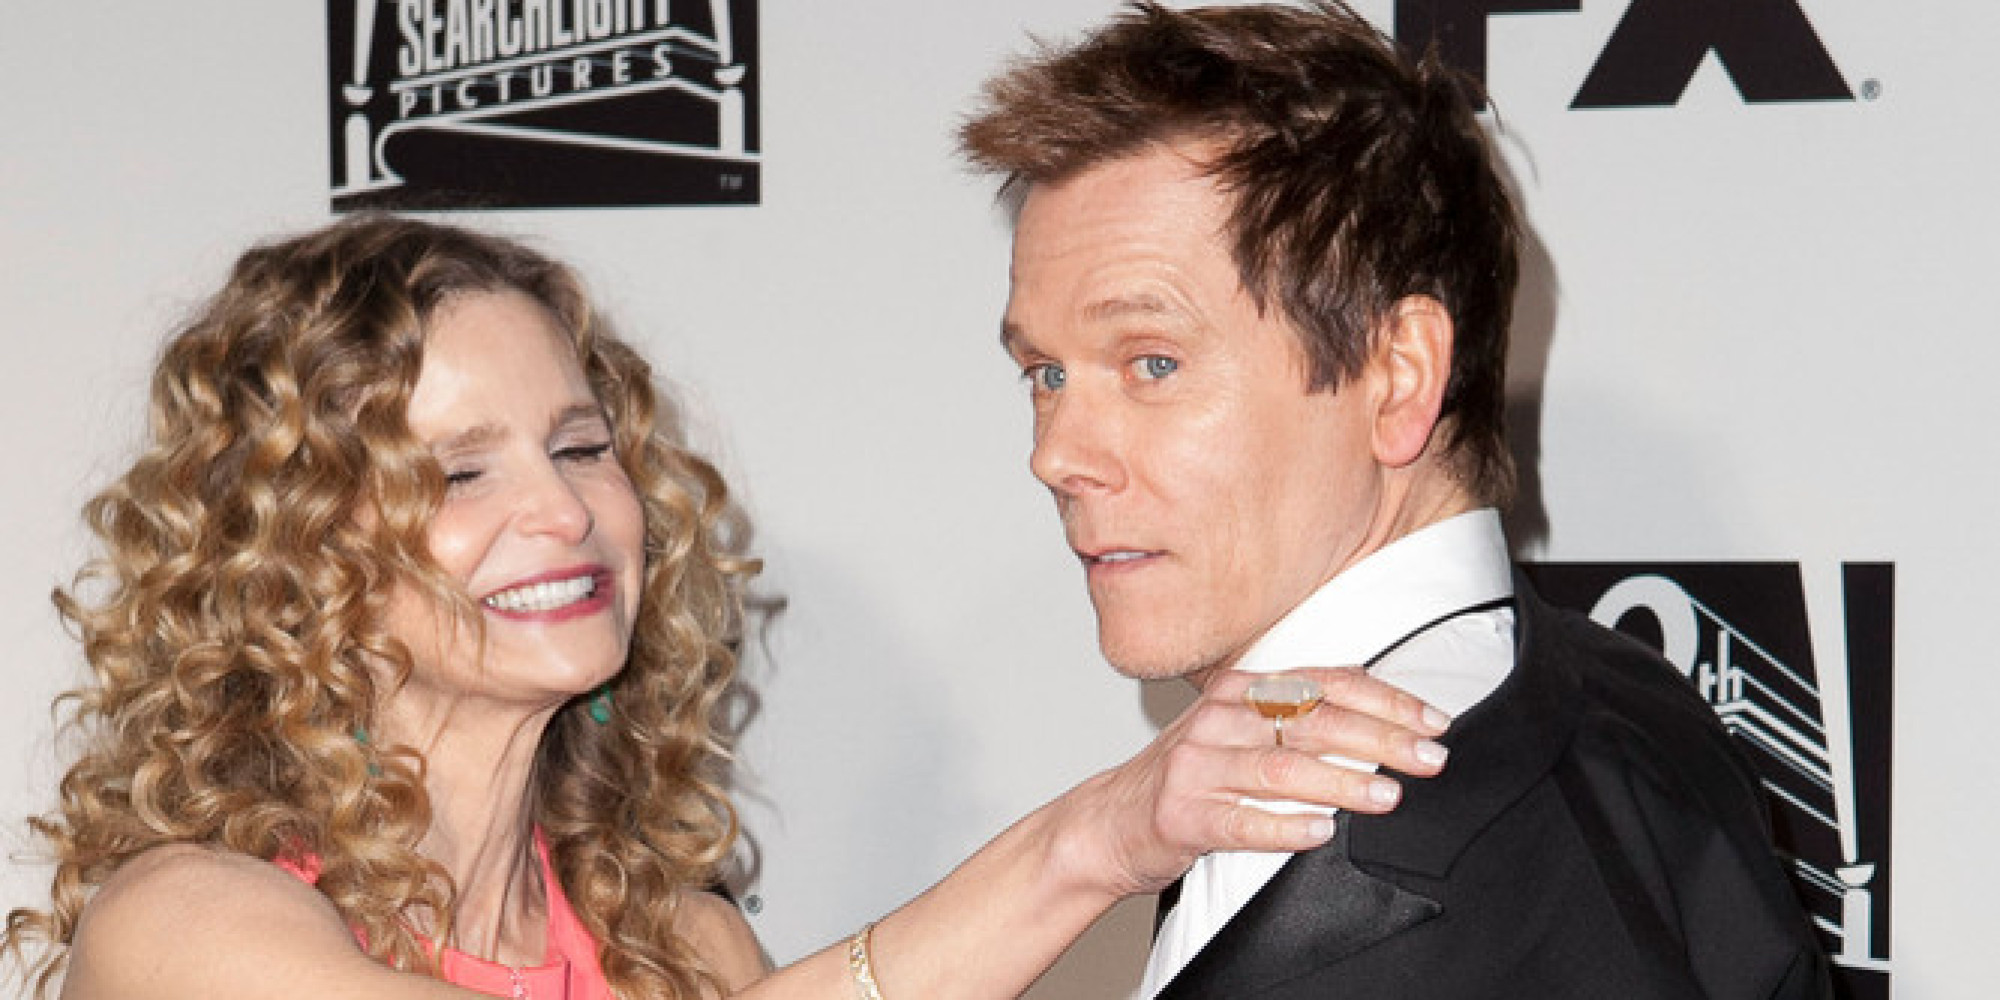 Kevin Bacon Reveals He First Met Wife Kyra Sedgwick When She Was 12 Years Old Huffpost